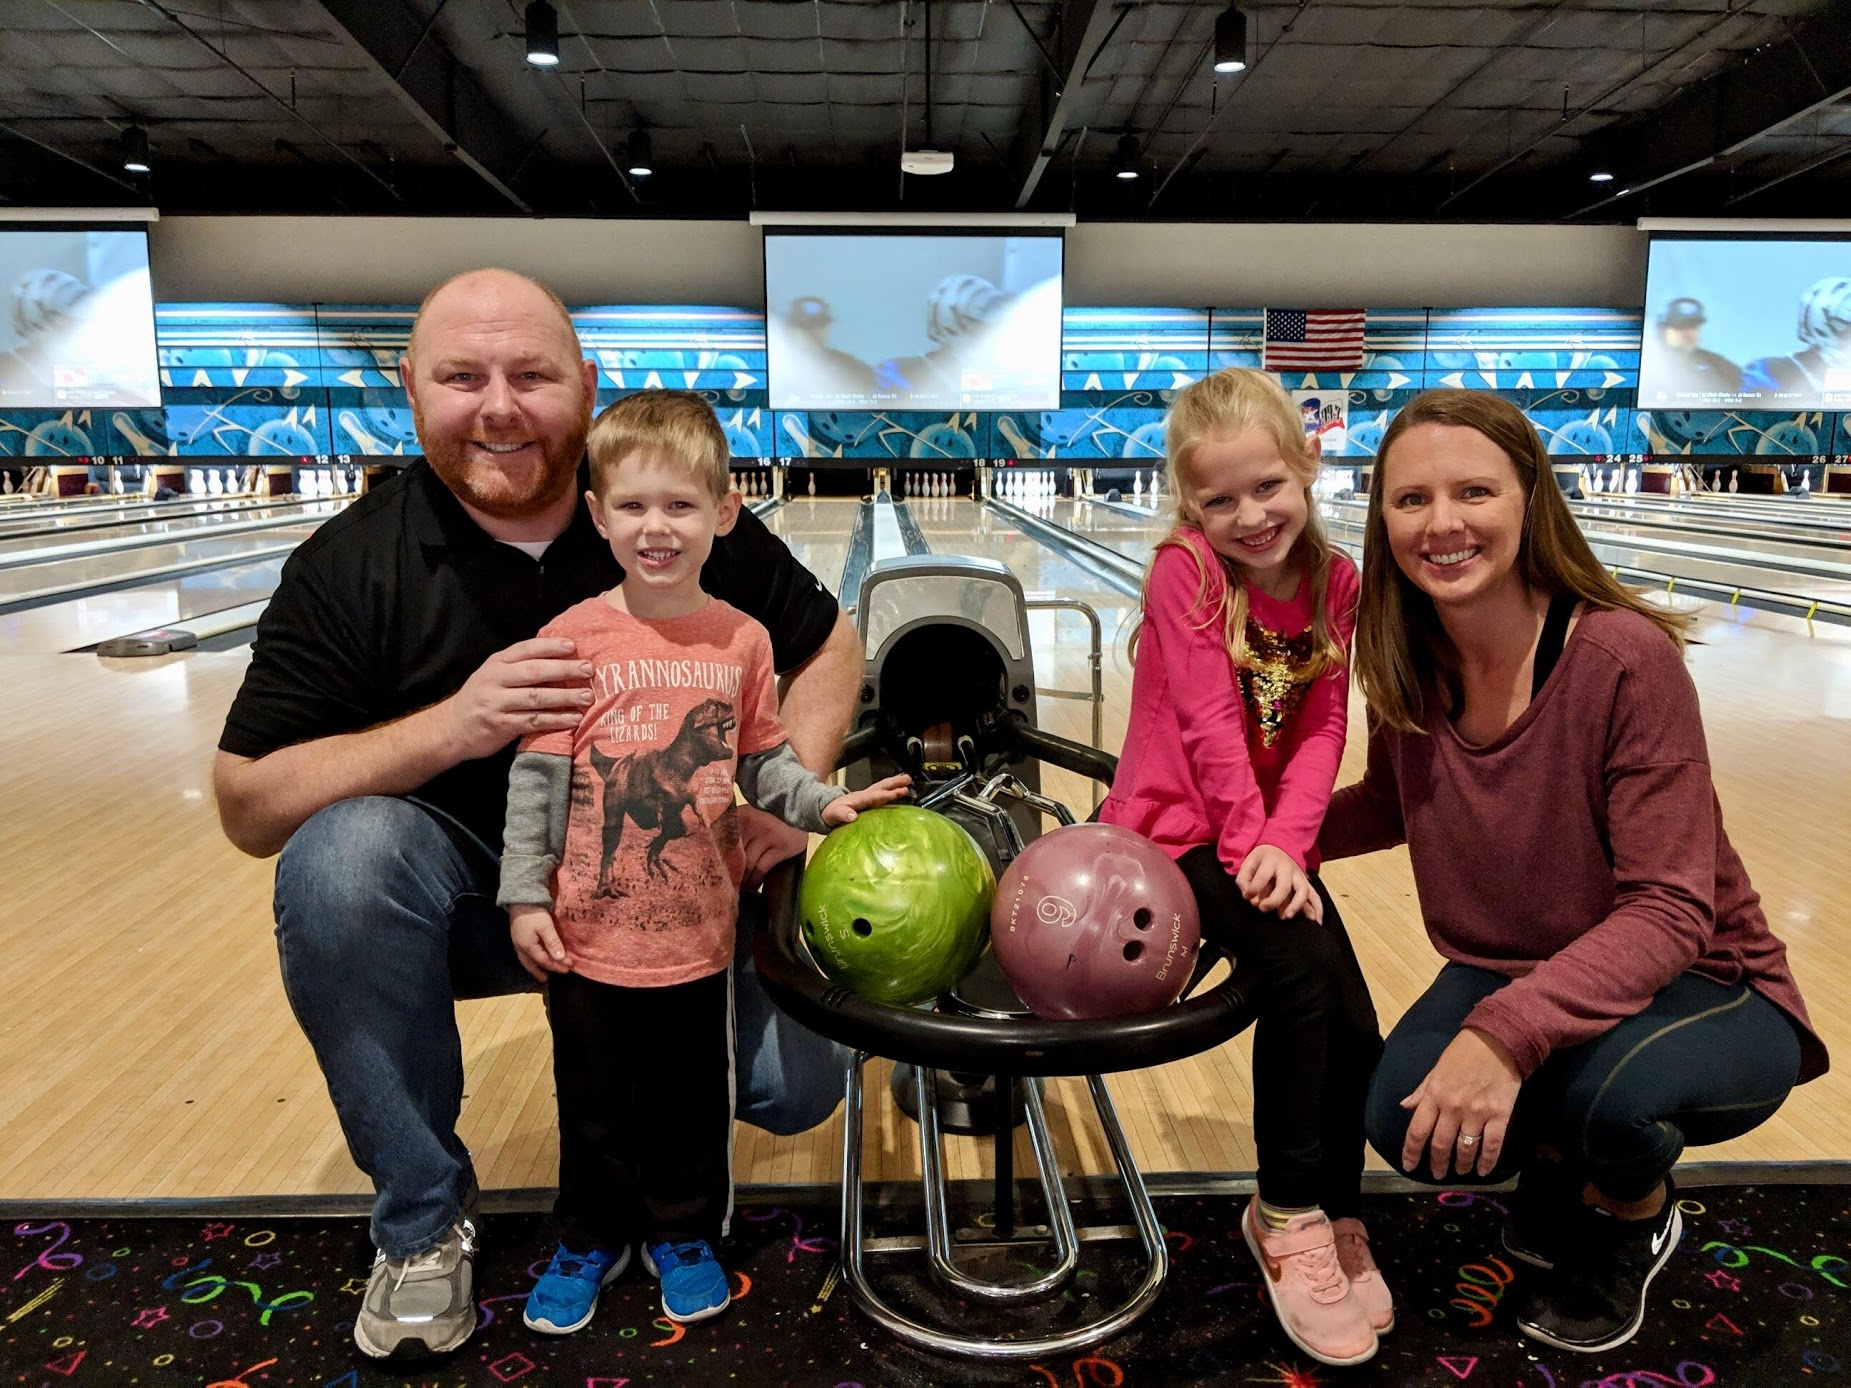 All summer kids can bowl for free at Strikz Entertainment in Frisco!